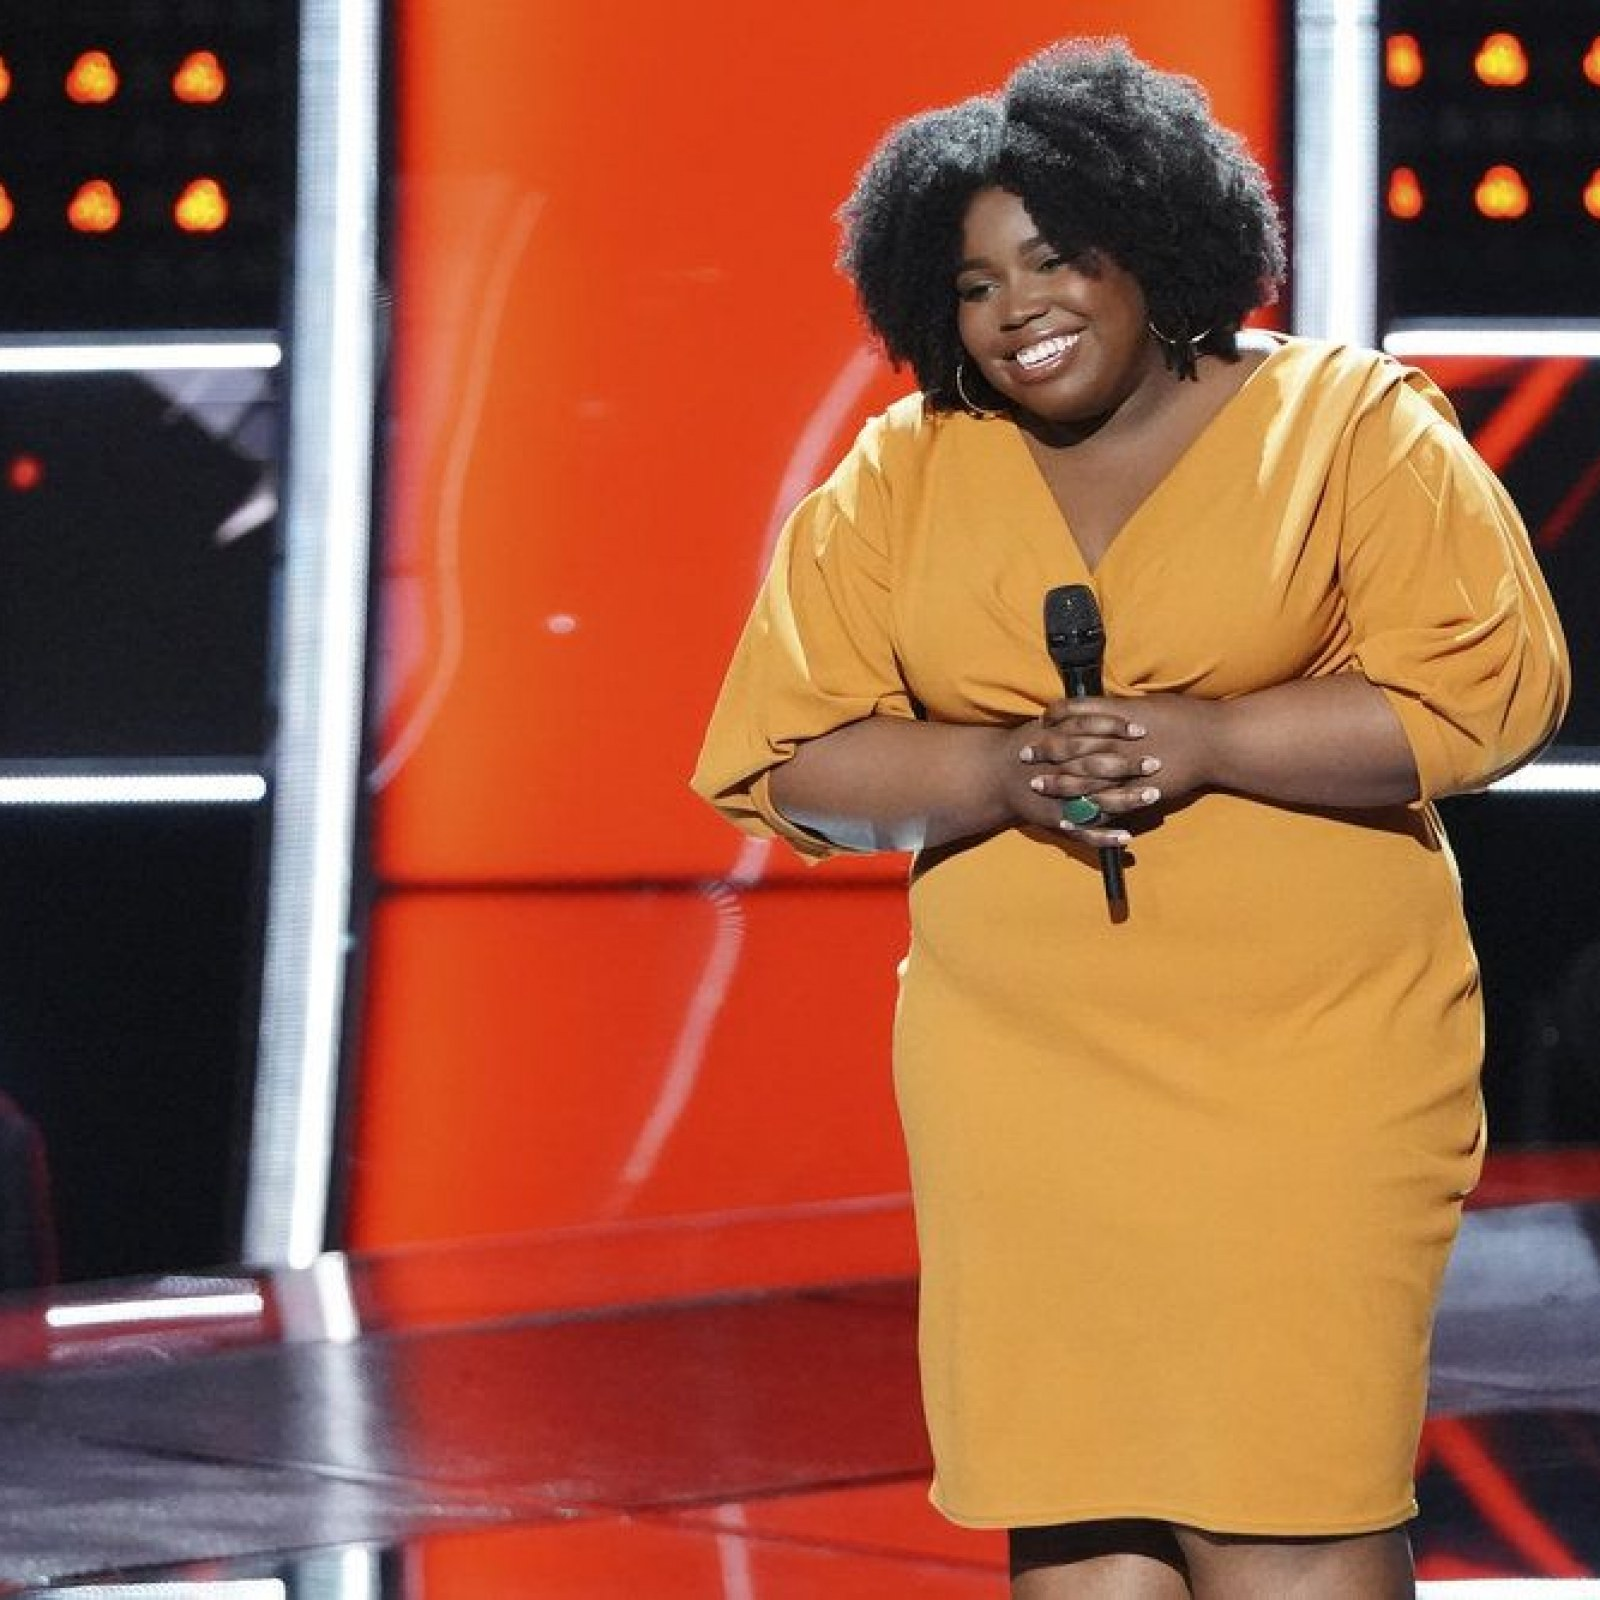 The Voice' Season 15 Blind Auditions 4 Recap: Who Made the